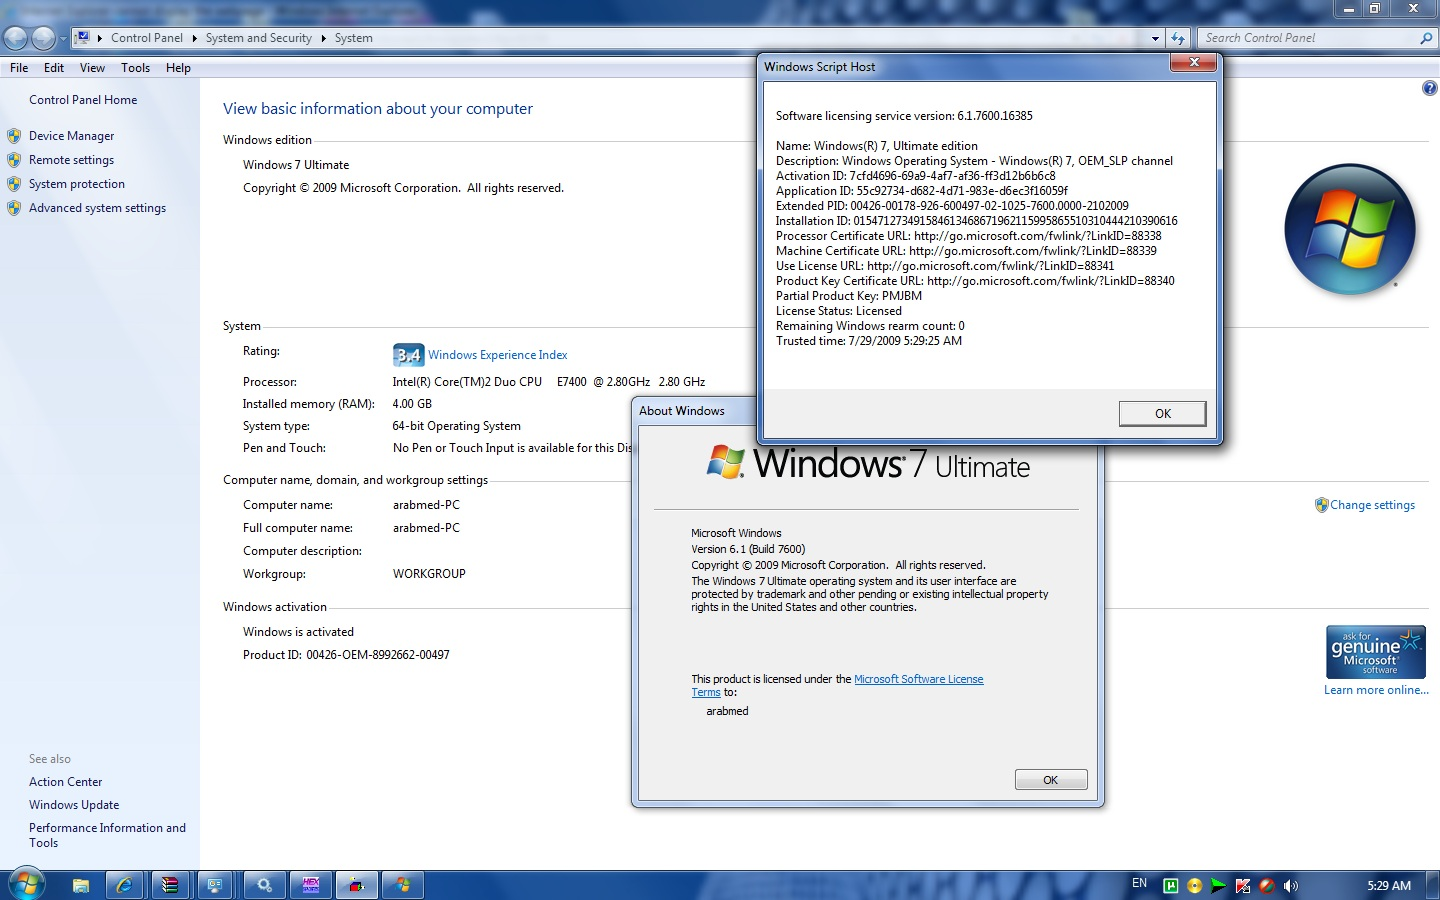 cracked windows 7 ultimate 64 bit